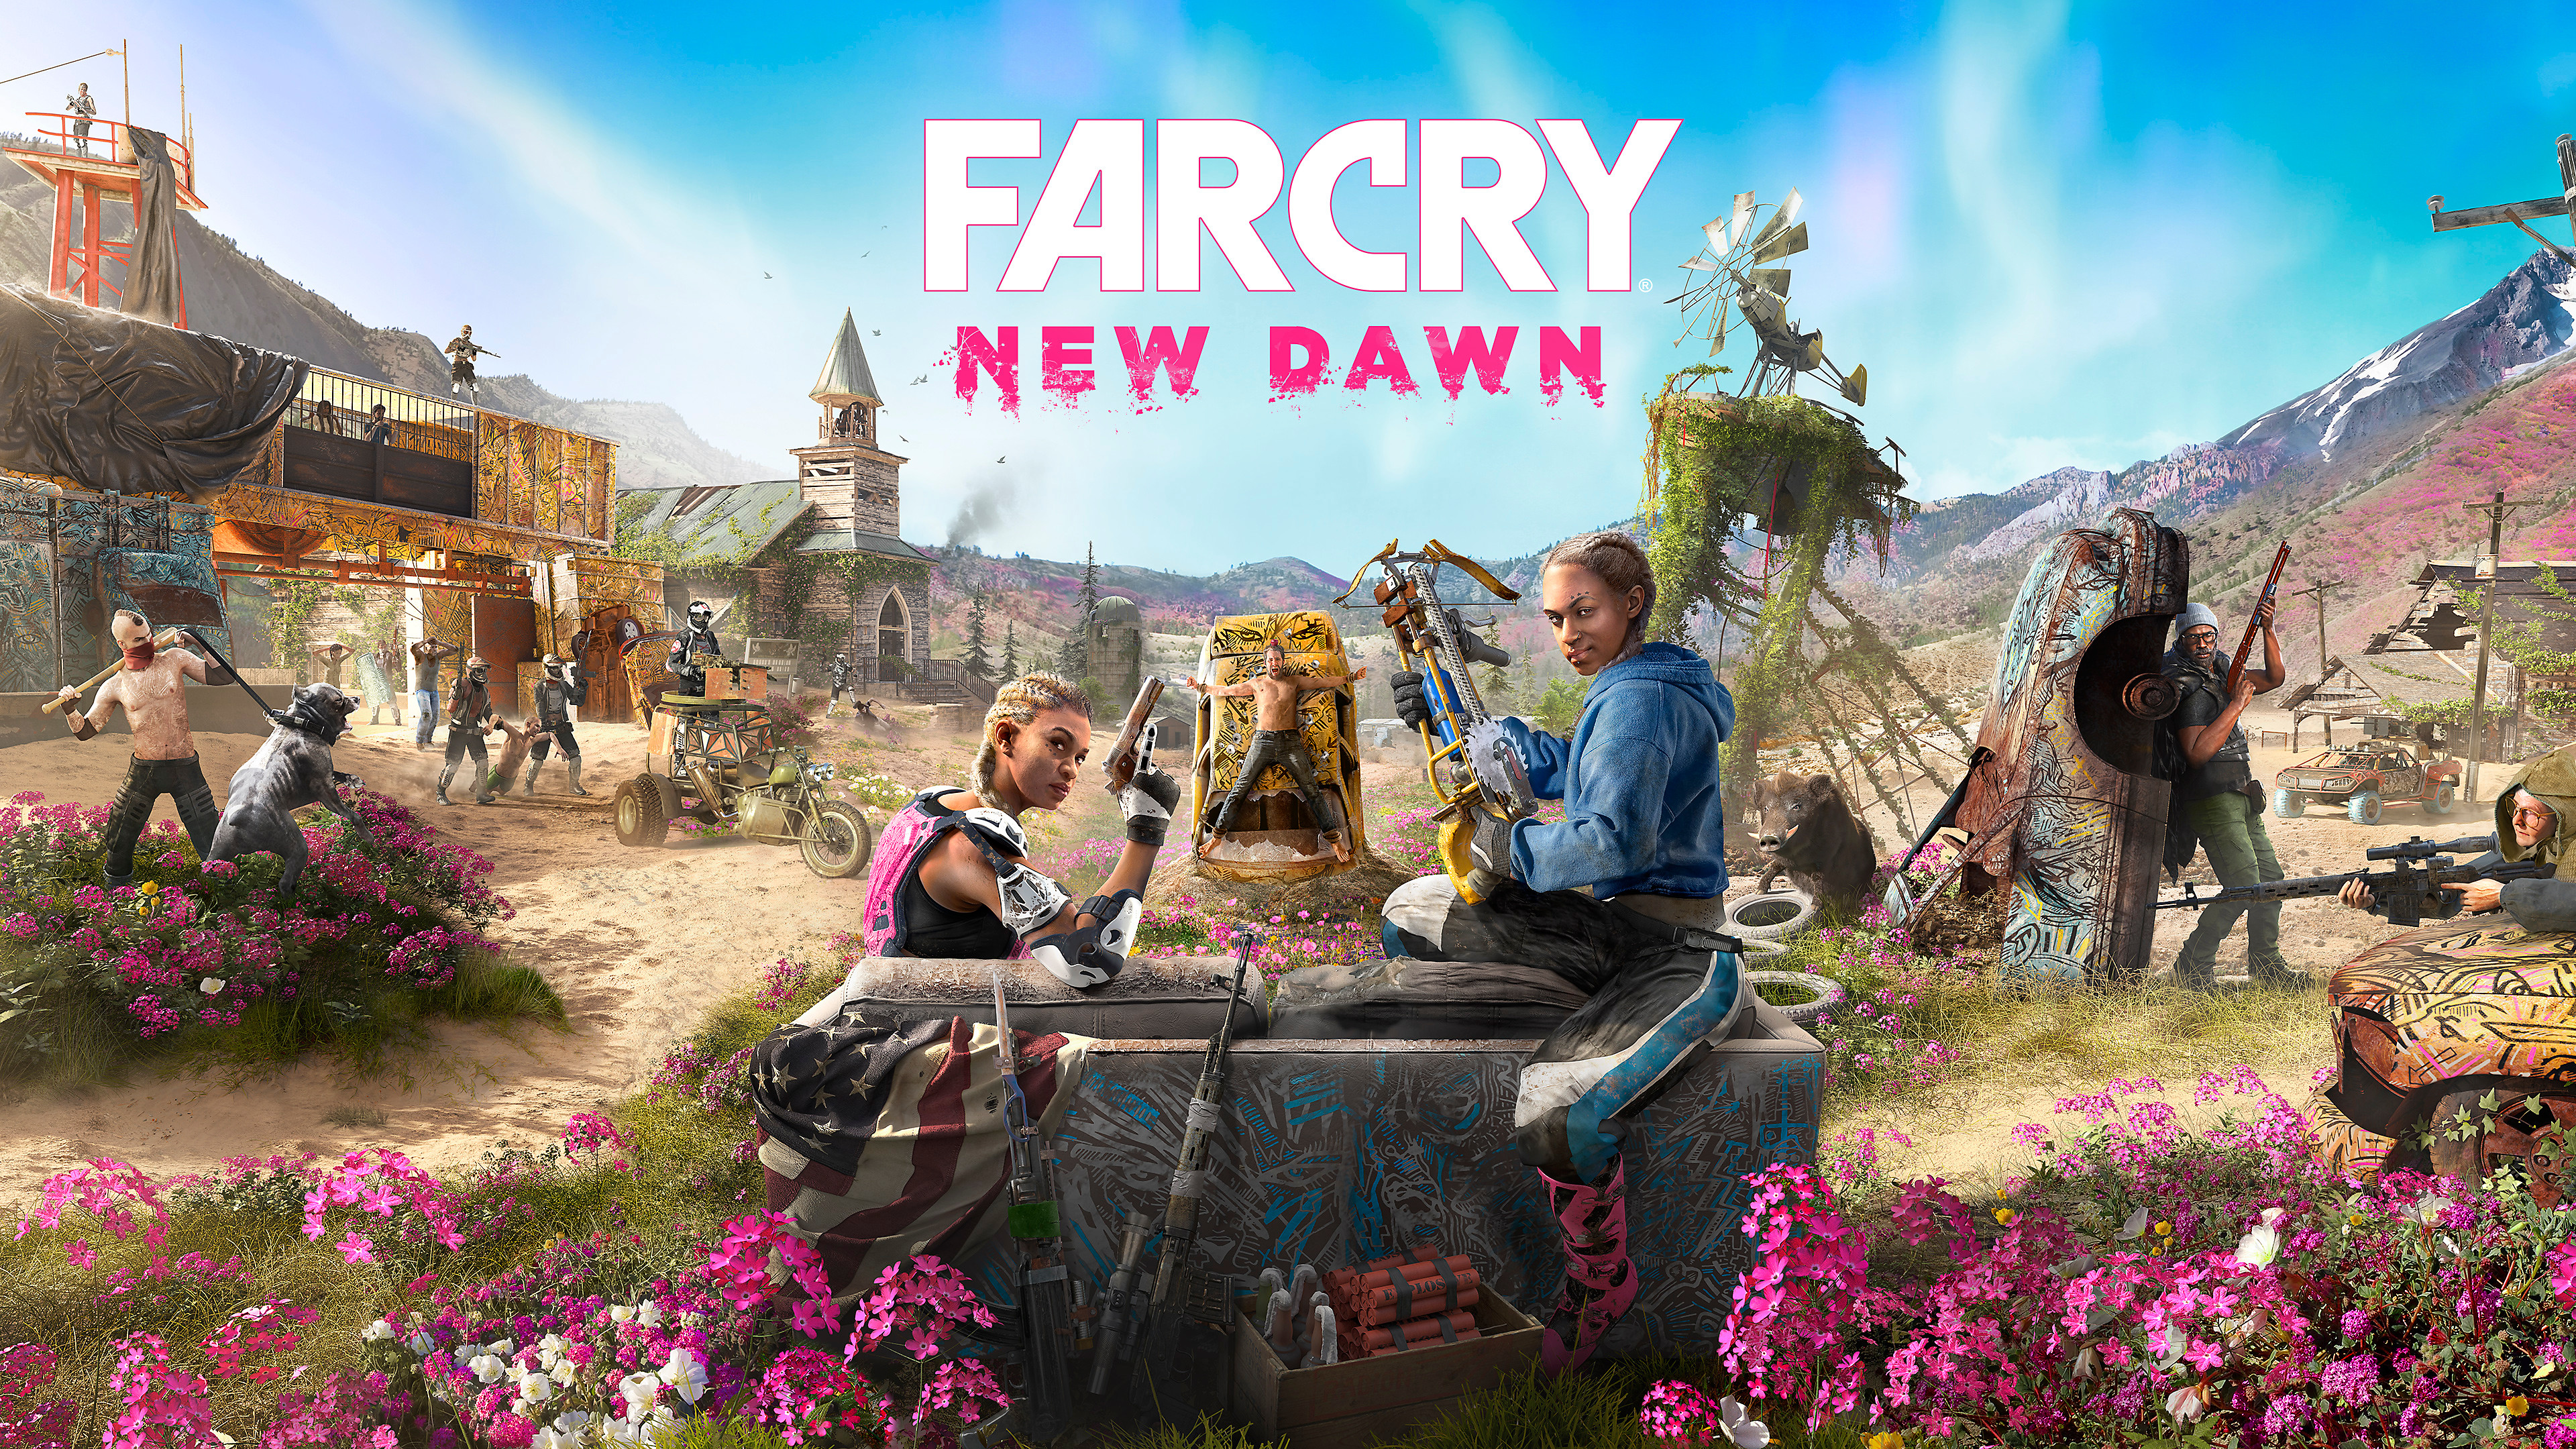 Far Cry New Dawn Cover Art 2019 Game 4k Wallpapers Hd Wallpapers